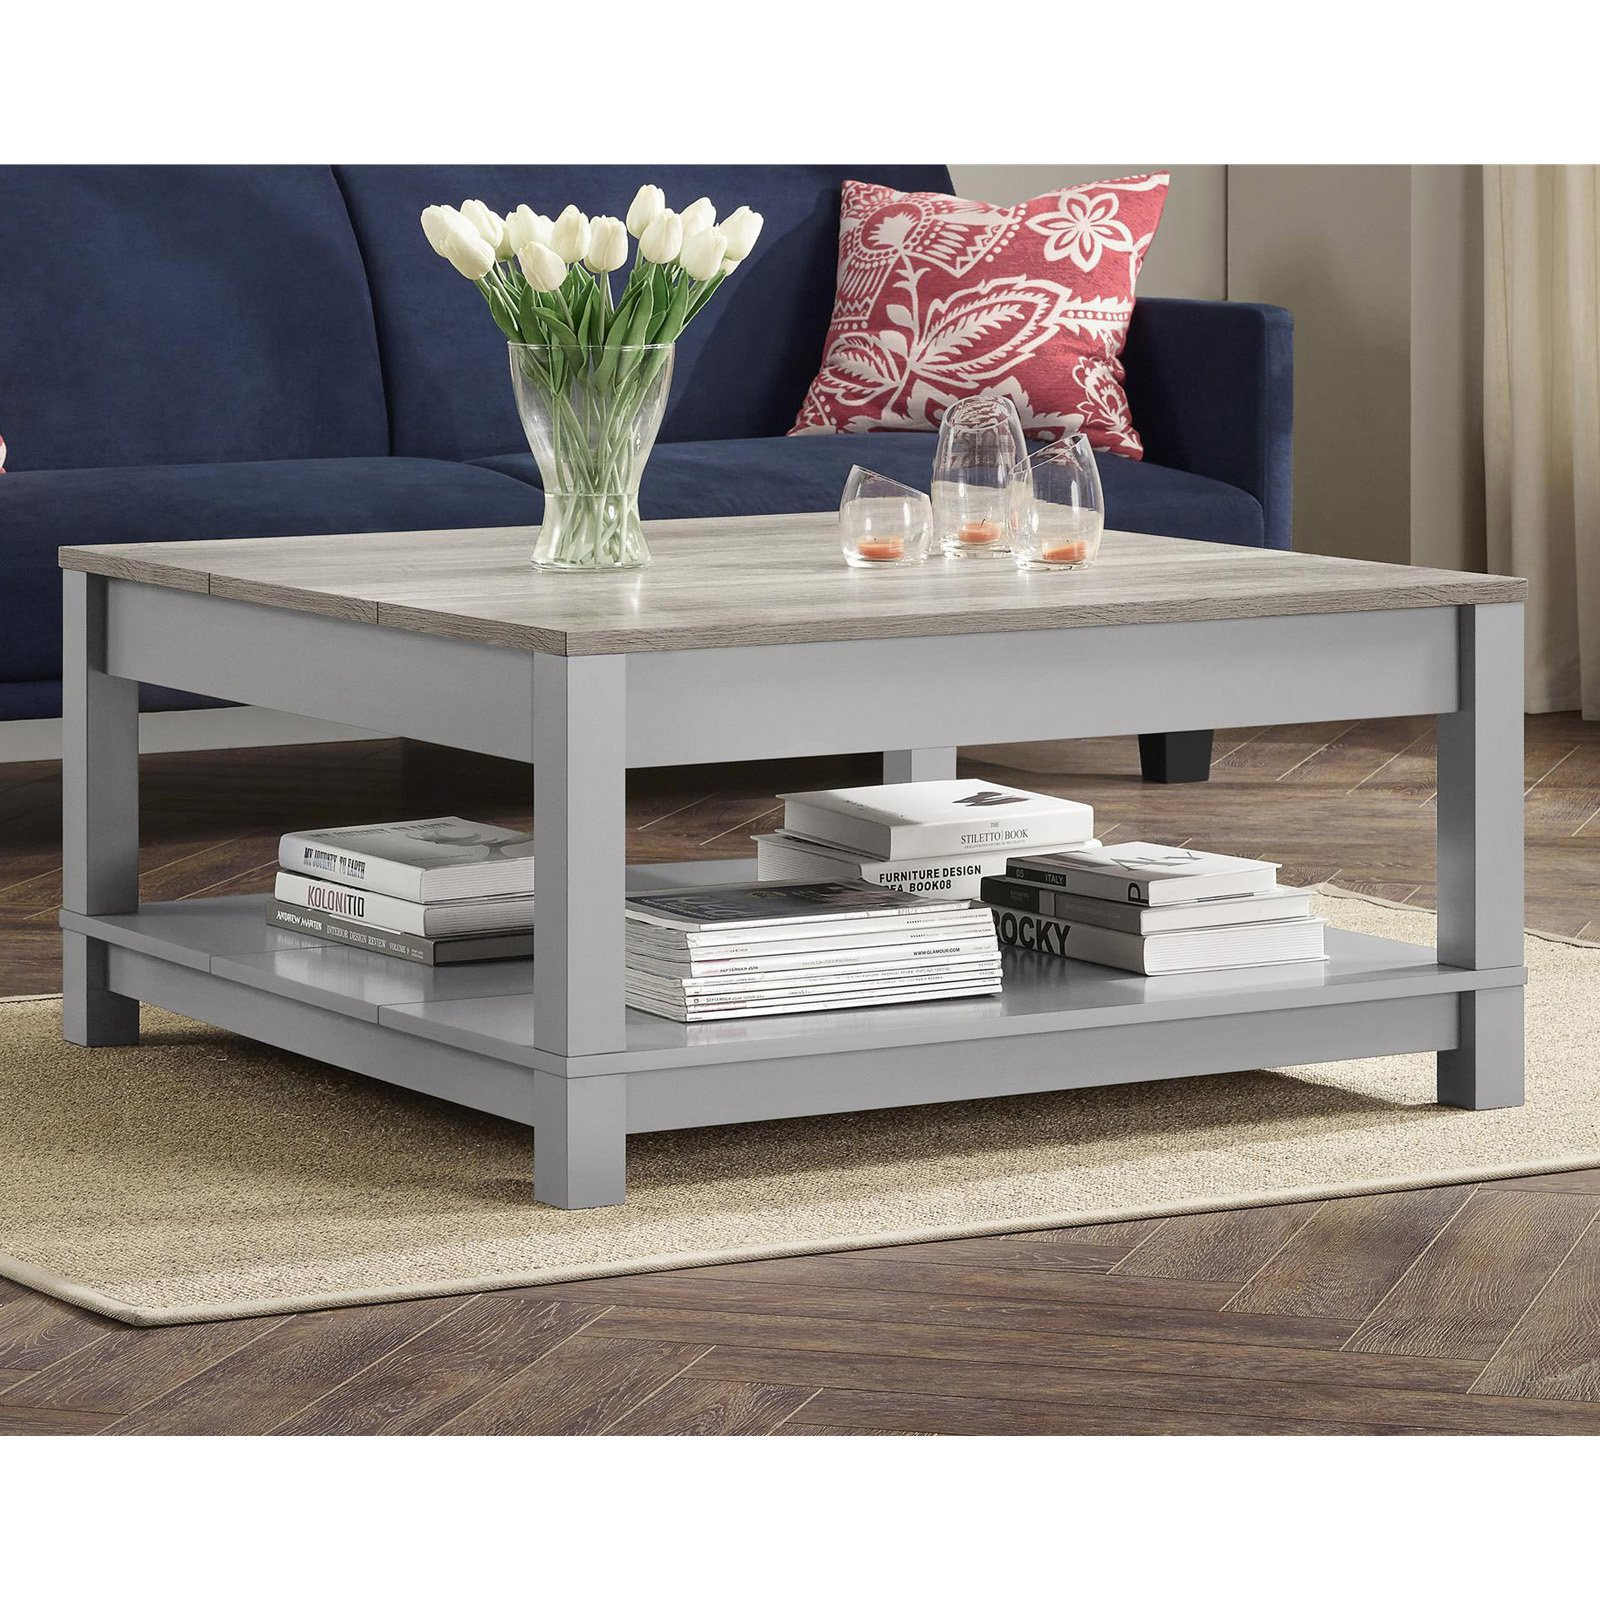 better homes and gardens mercer coffee table amazing interior best langley bay multiple colors accent vintage oak therefugecoffee all glass diy living room wood wrought iron end